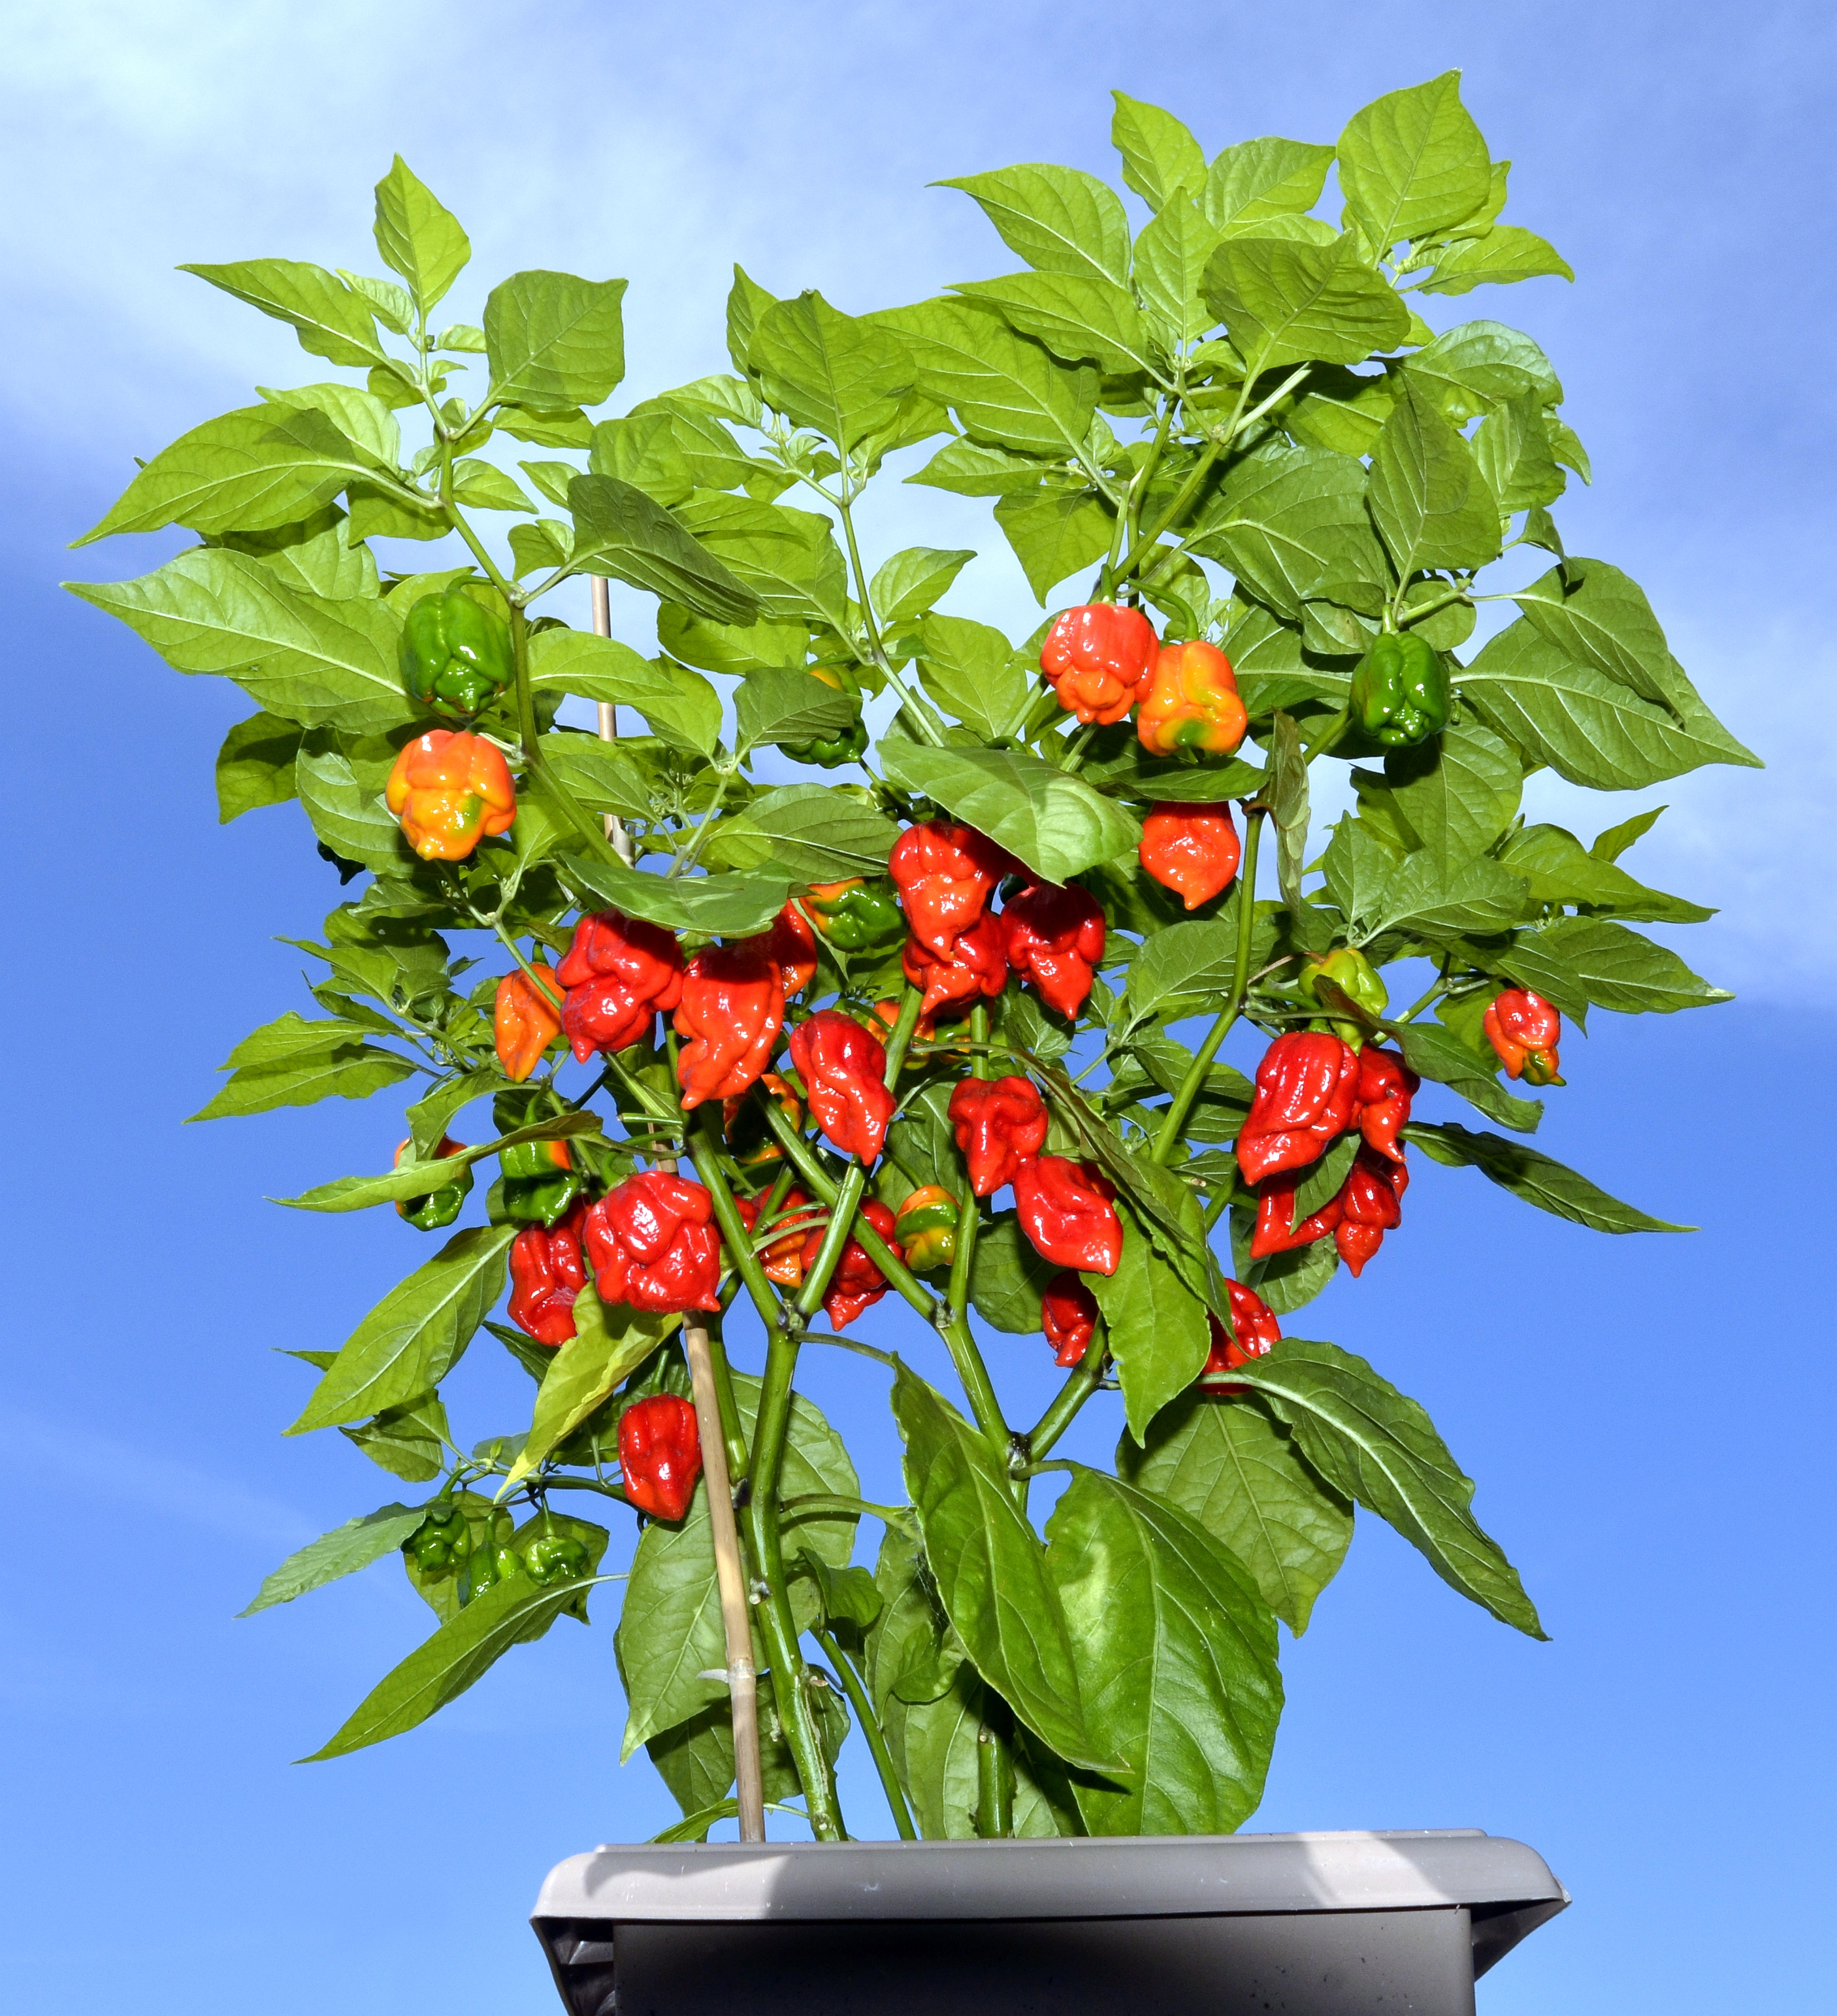 20 Seeds  Red Ghost Peppers Super Hot Bhut Jolokia Chili  Peppers  USA SELLER